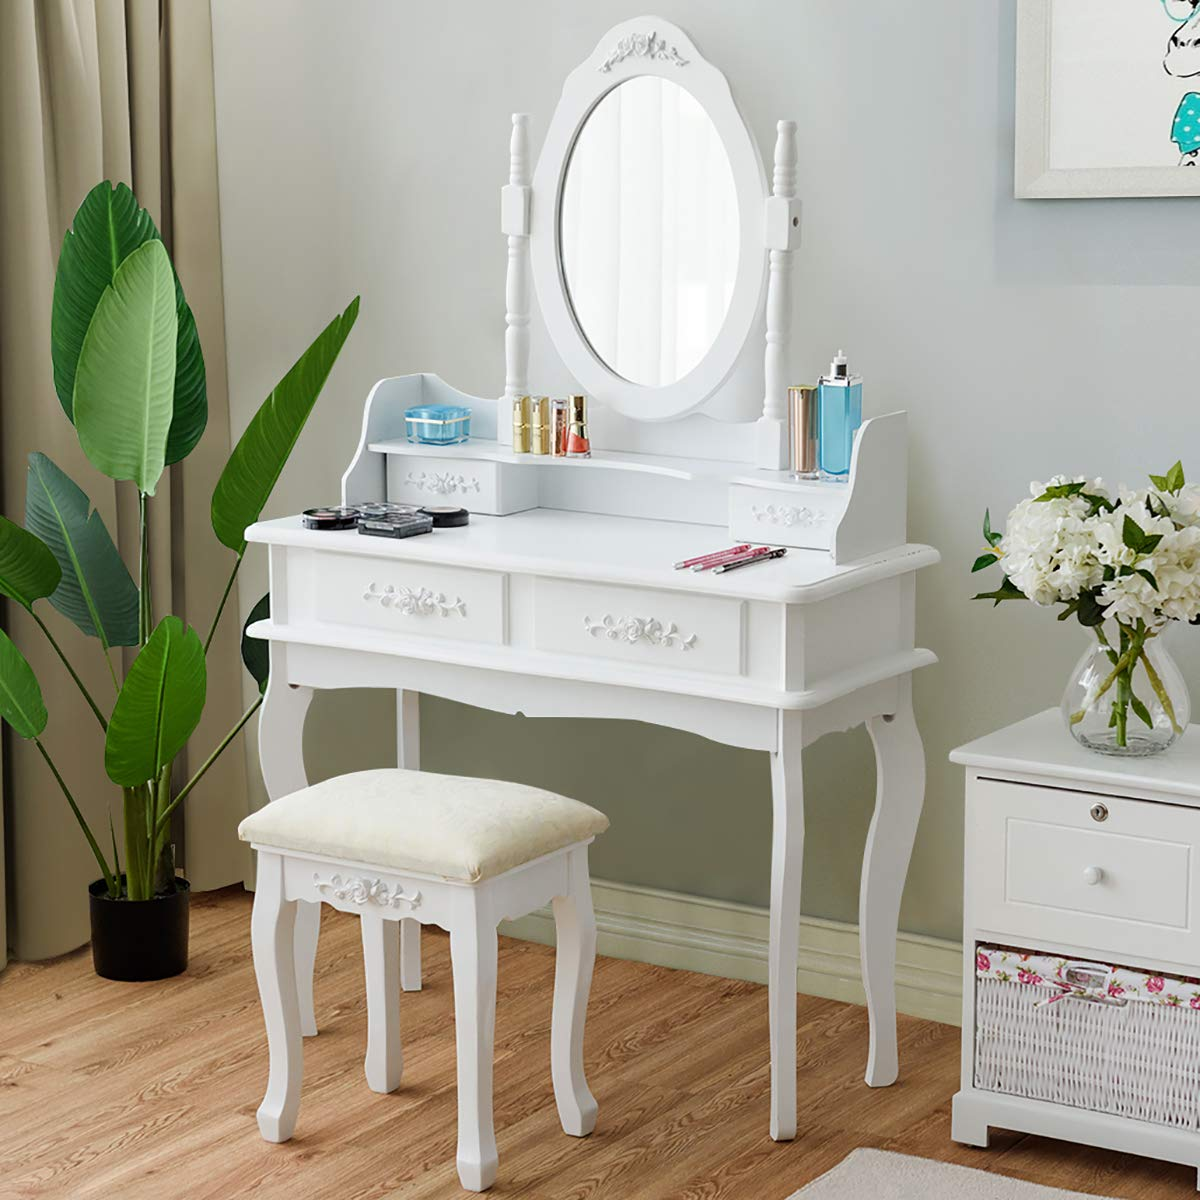 CHARMAID Makeup Table with Rotatable Mirror and 4 Drawer, Princess Girls Women Dressing Table with Cushioned Stool, Vanity Set with Oval Mirror (White) by CHARMAID